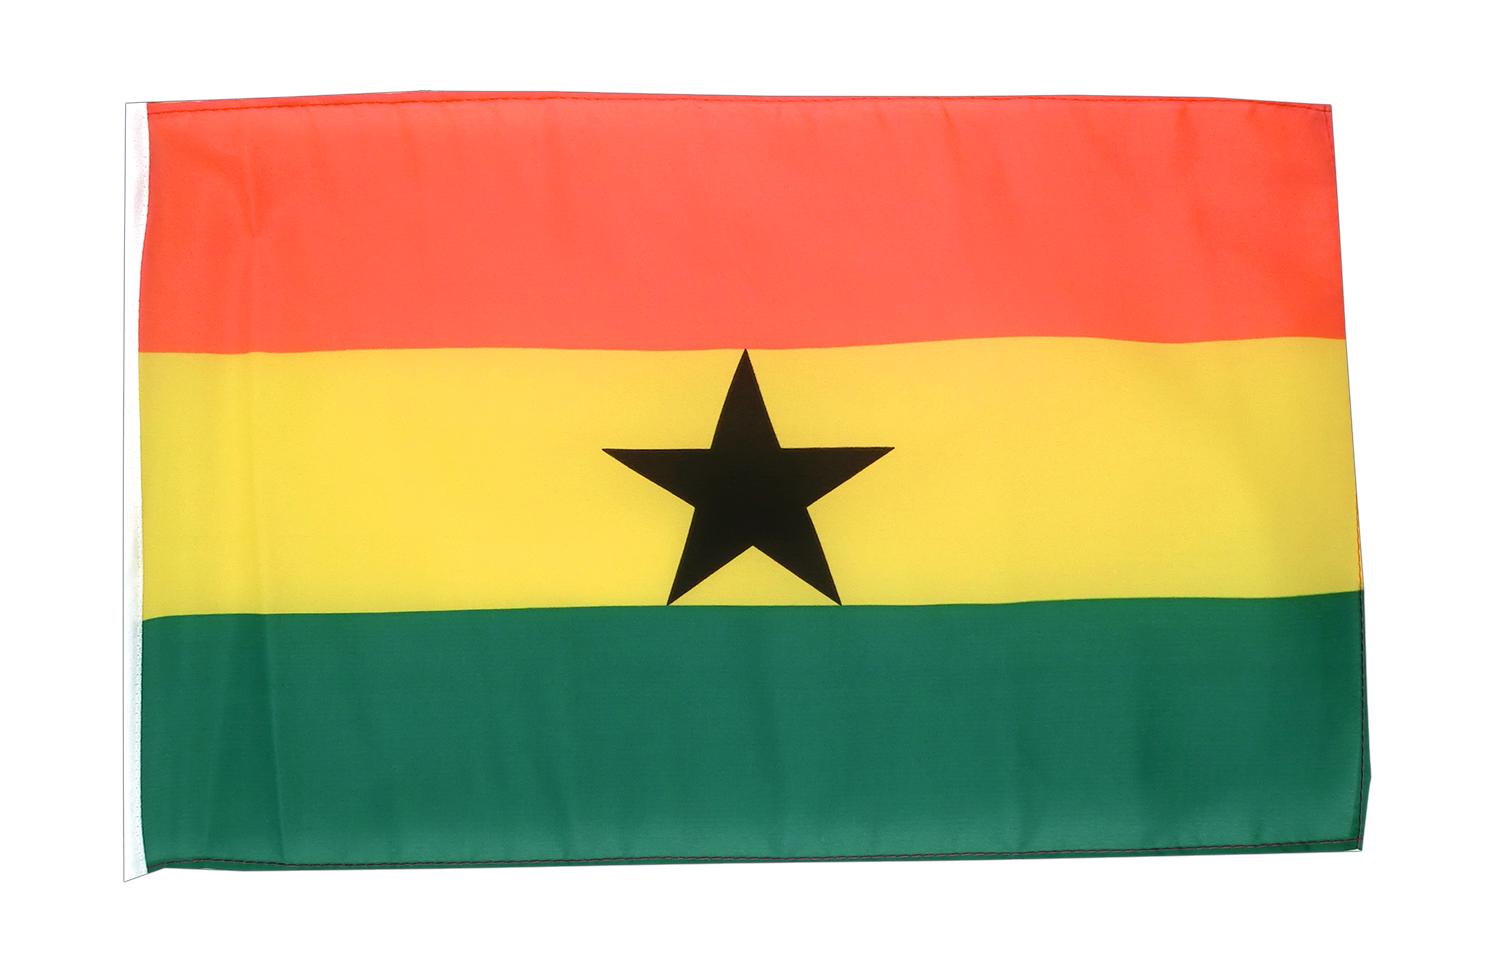 kleine ghana flagge 30 x 45 cm flaggenplatz. Black Bedroom Furniture Sets. Home Design Ideas